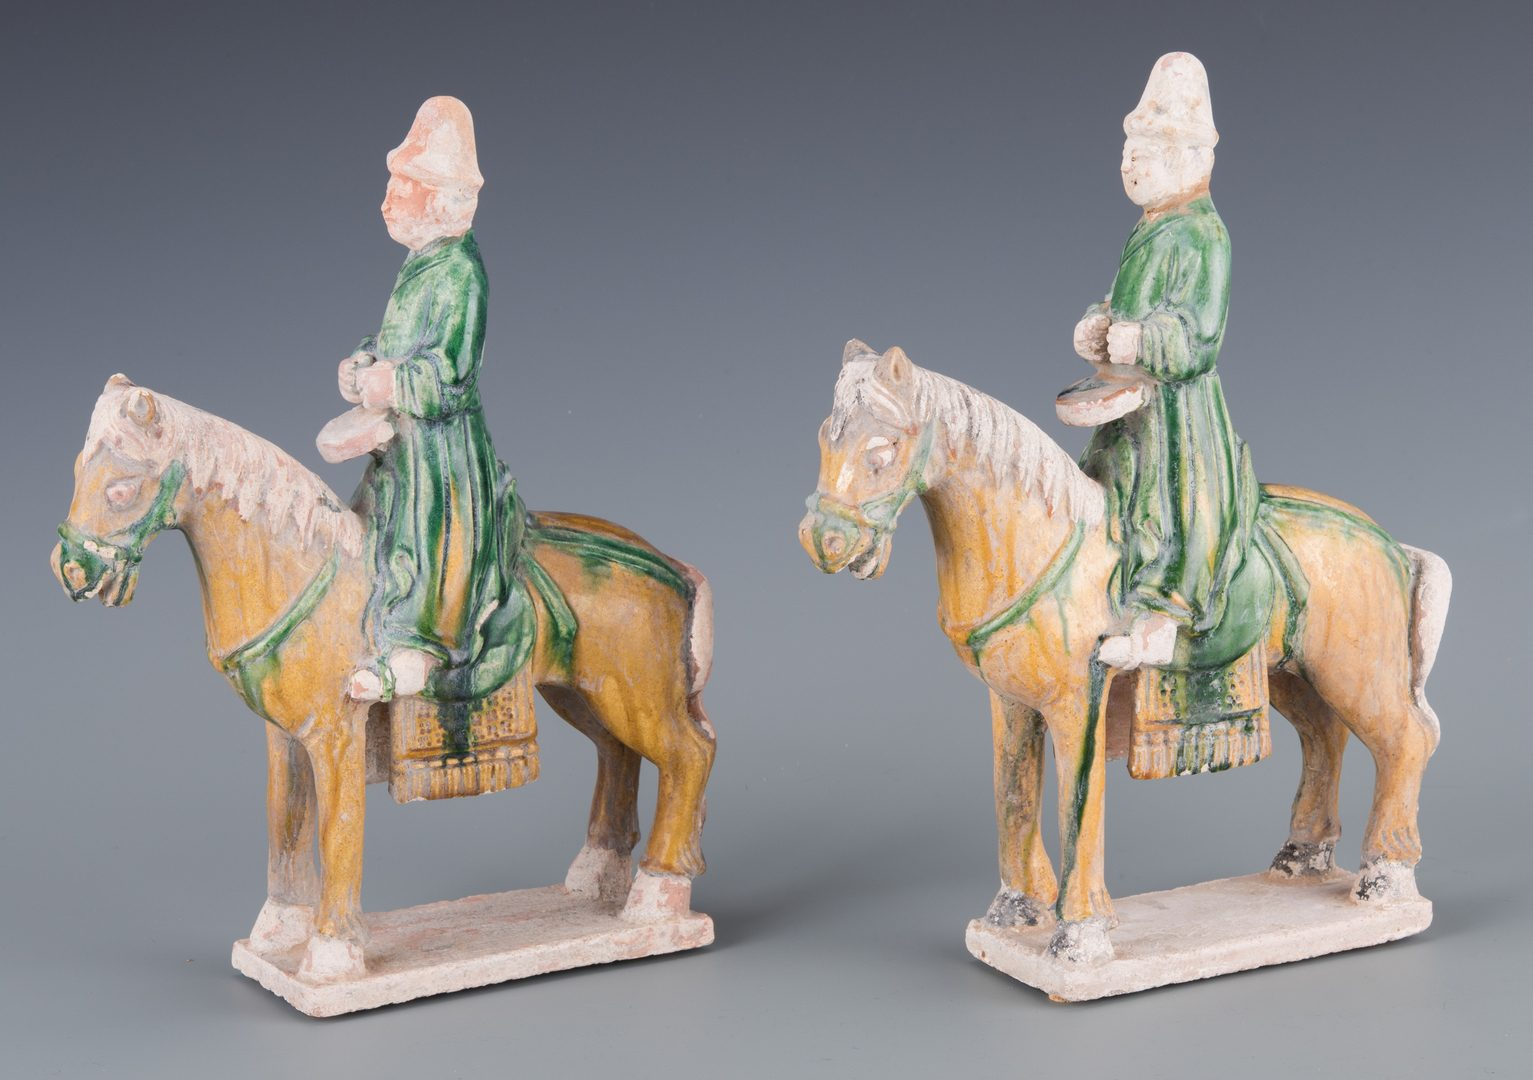 Lot 271: Pr. Chinese Ceramic Horse w/ Riders Figurines